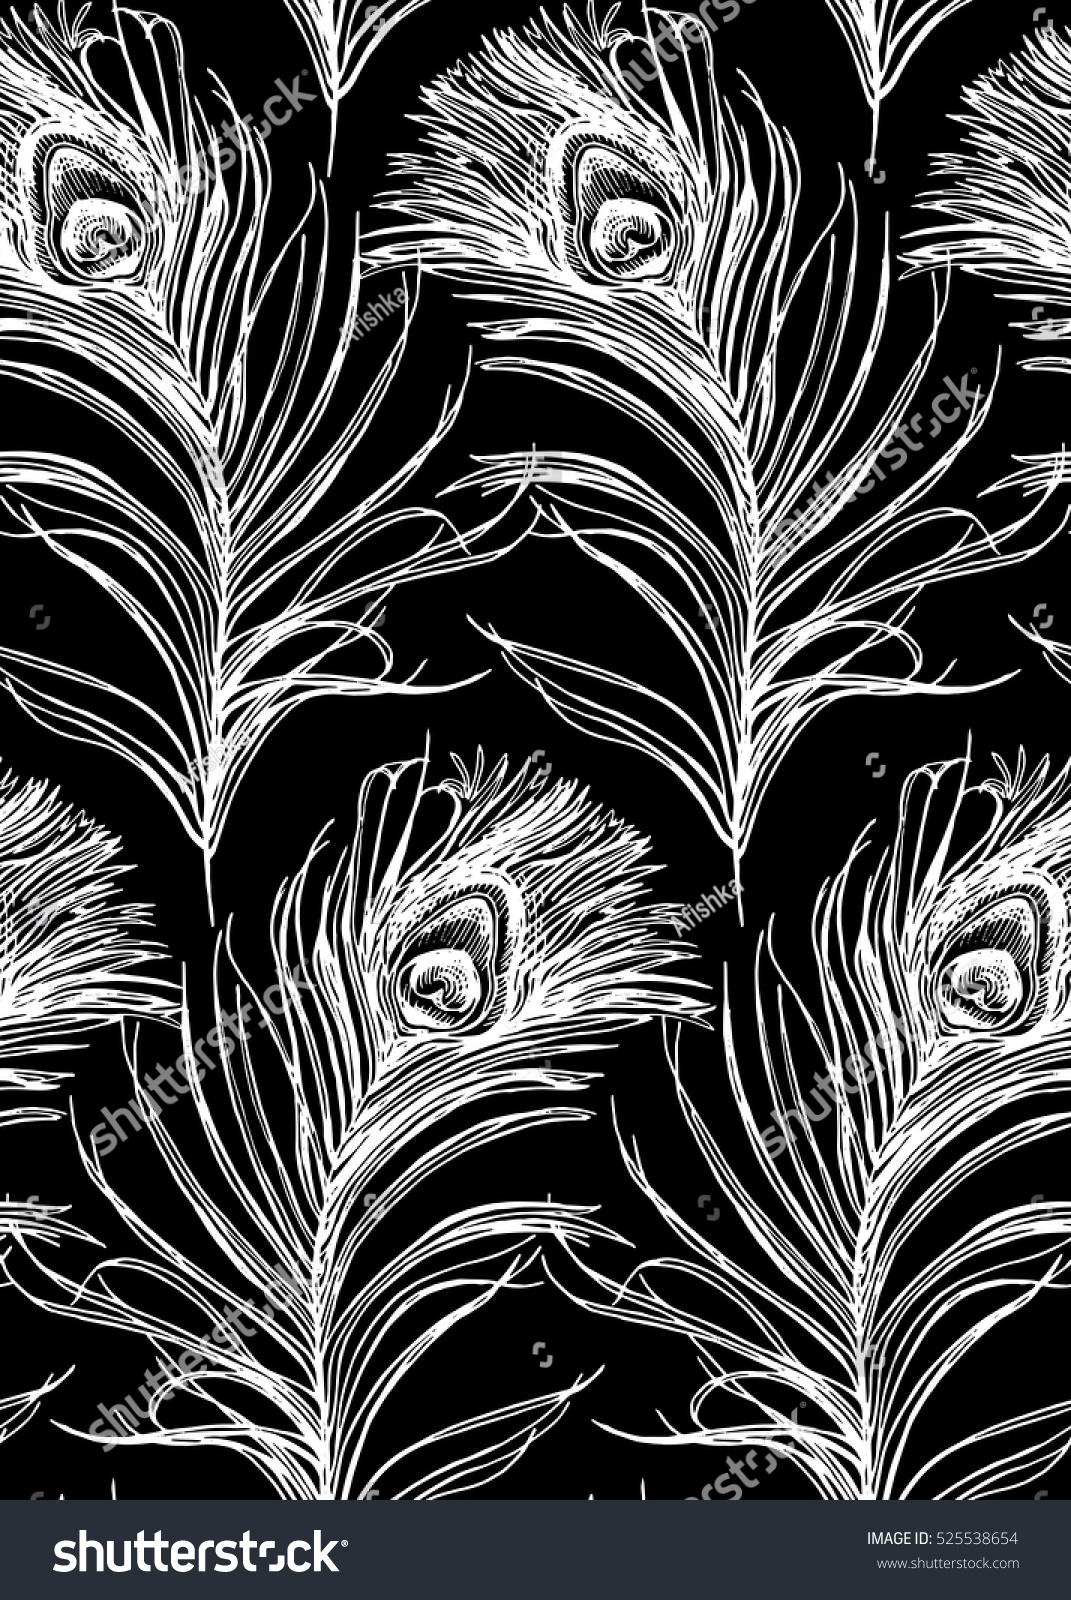 Seamless Pattern Image Peacock Feather Vector Stock Vector ...